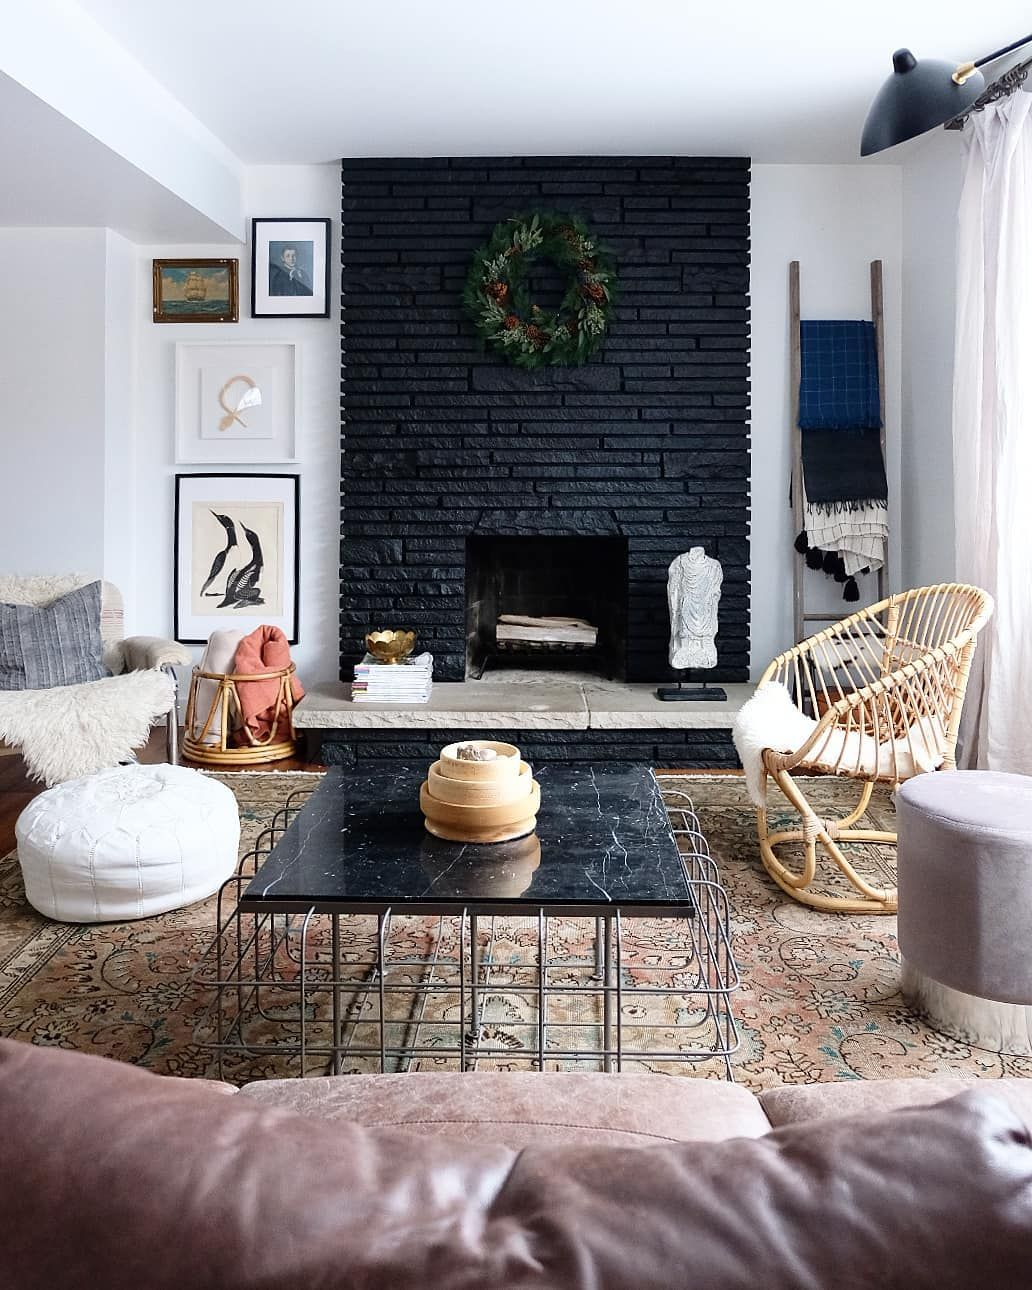 Black Painted Fireplace With Natural Stone Hearth And Simple Wreath Love How Dramatic It Is Painted Brick Fireplaces Brick Fireplace Black Fireplace